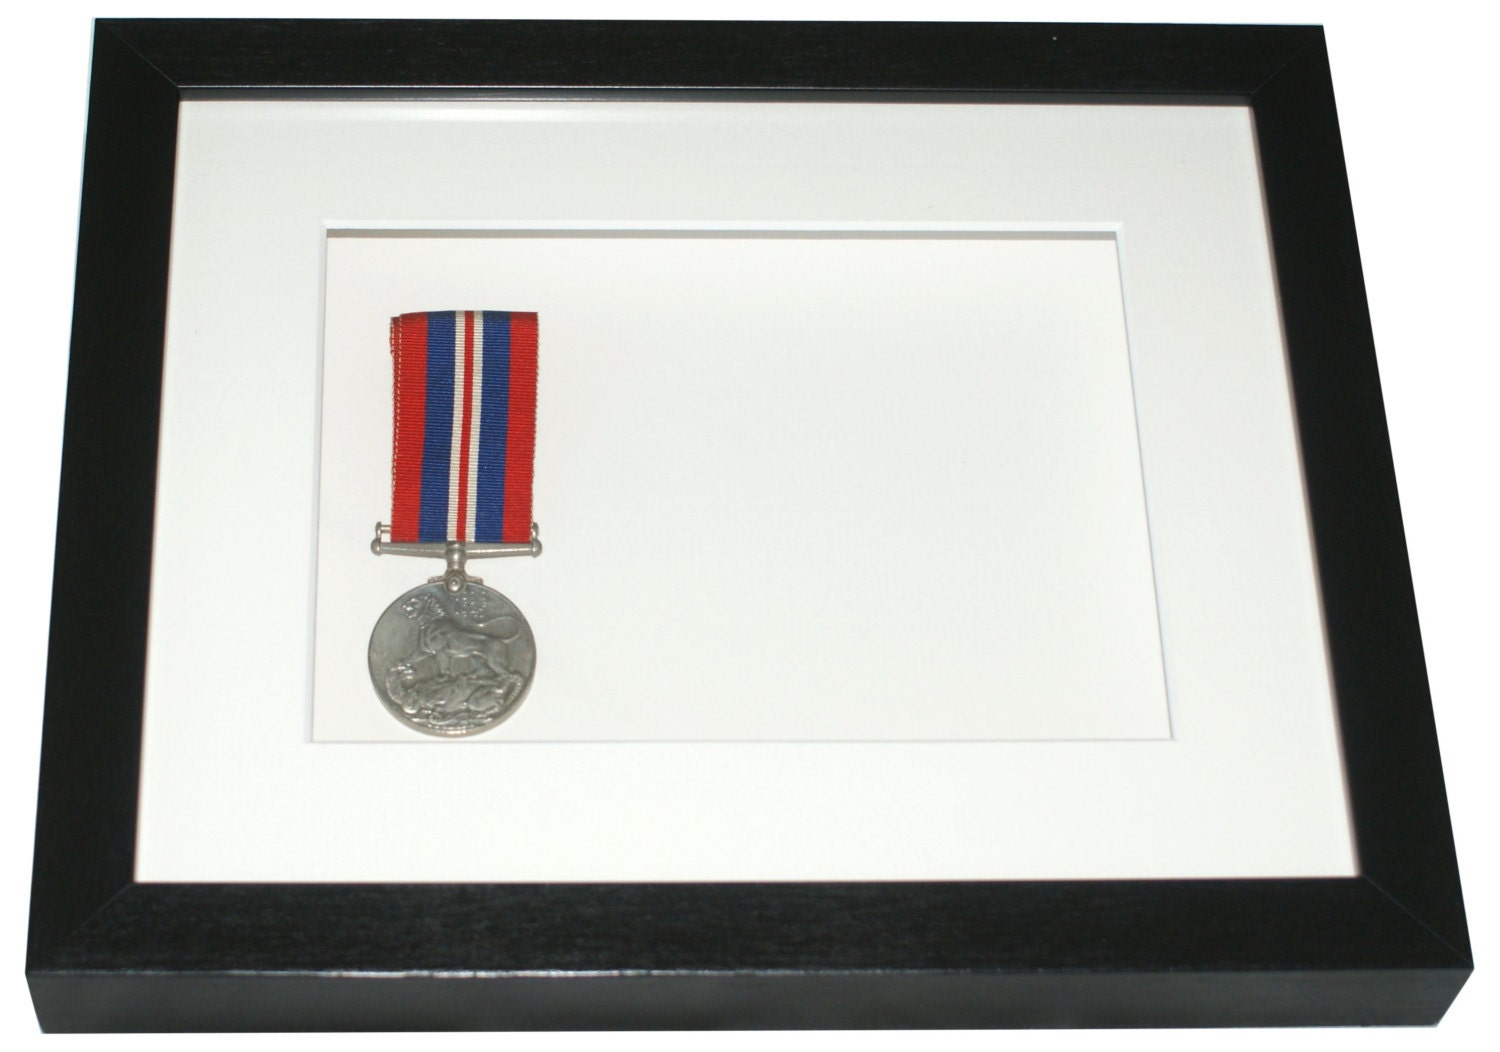 Deep shadow box display frame 10 x 8 for medals decoupage zoom jeuxipadfo Image collections